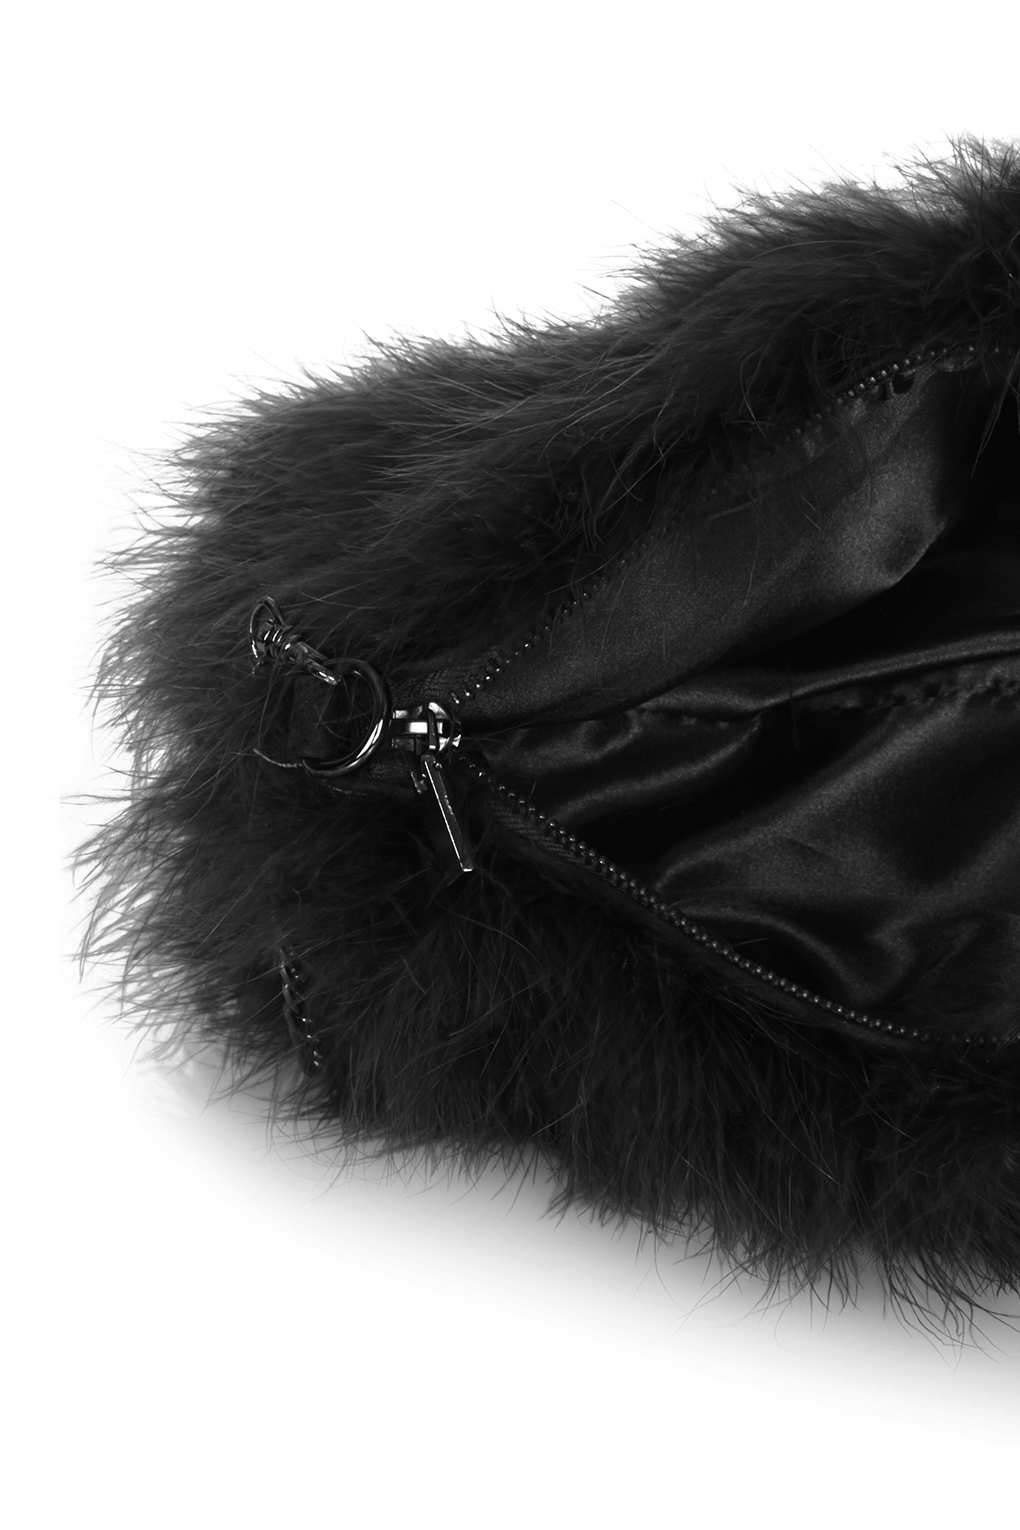 Topshop Marabou Feather Bag in Black - Lyst 9196a32805365